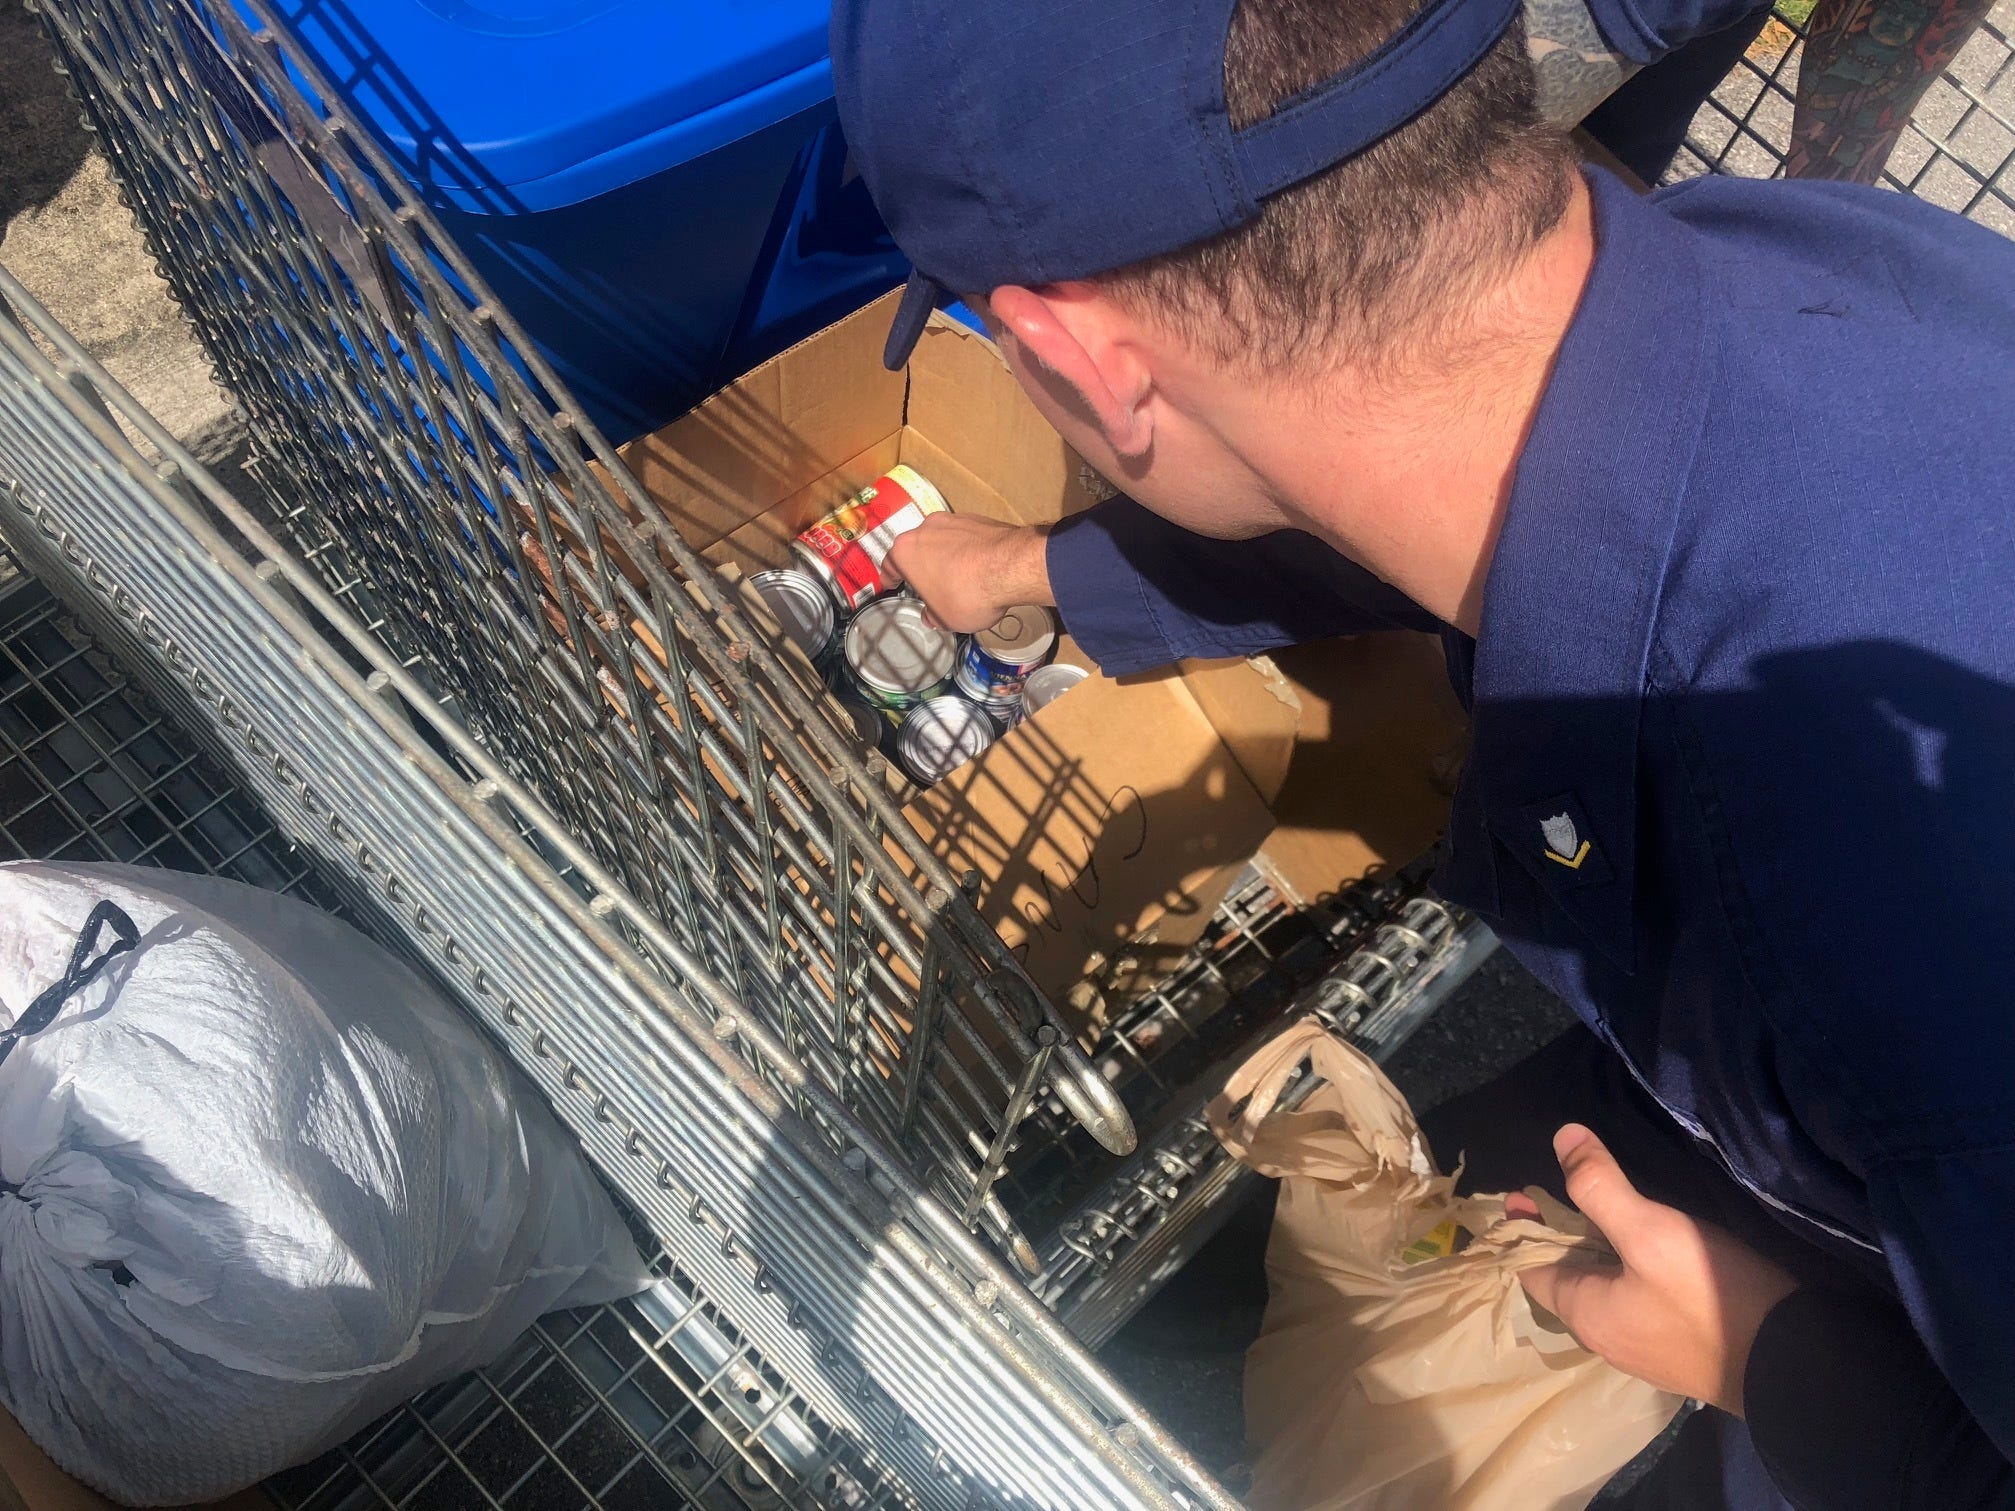 Crewmembers from Coast Guard Sector Guam pack canned good and other supplies to be transported to Saipan, Oct. 26, 2018. Members of the community on Guam donated many different supplies to sent for relief efforts to those effected by Typhoon Yutu.